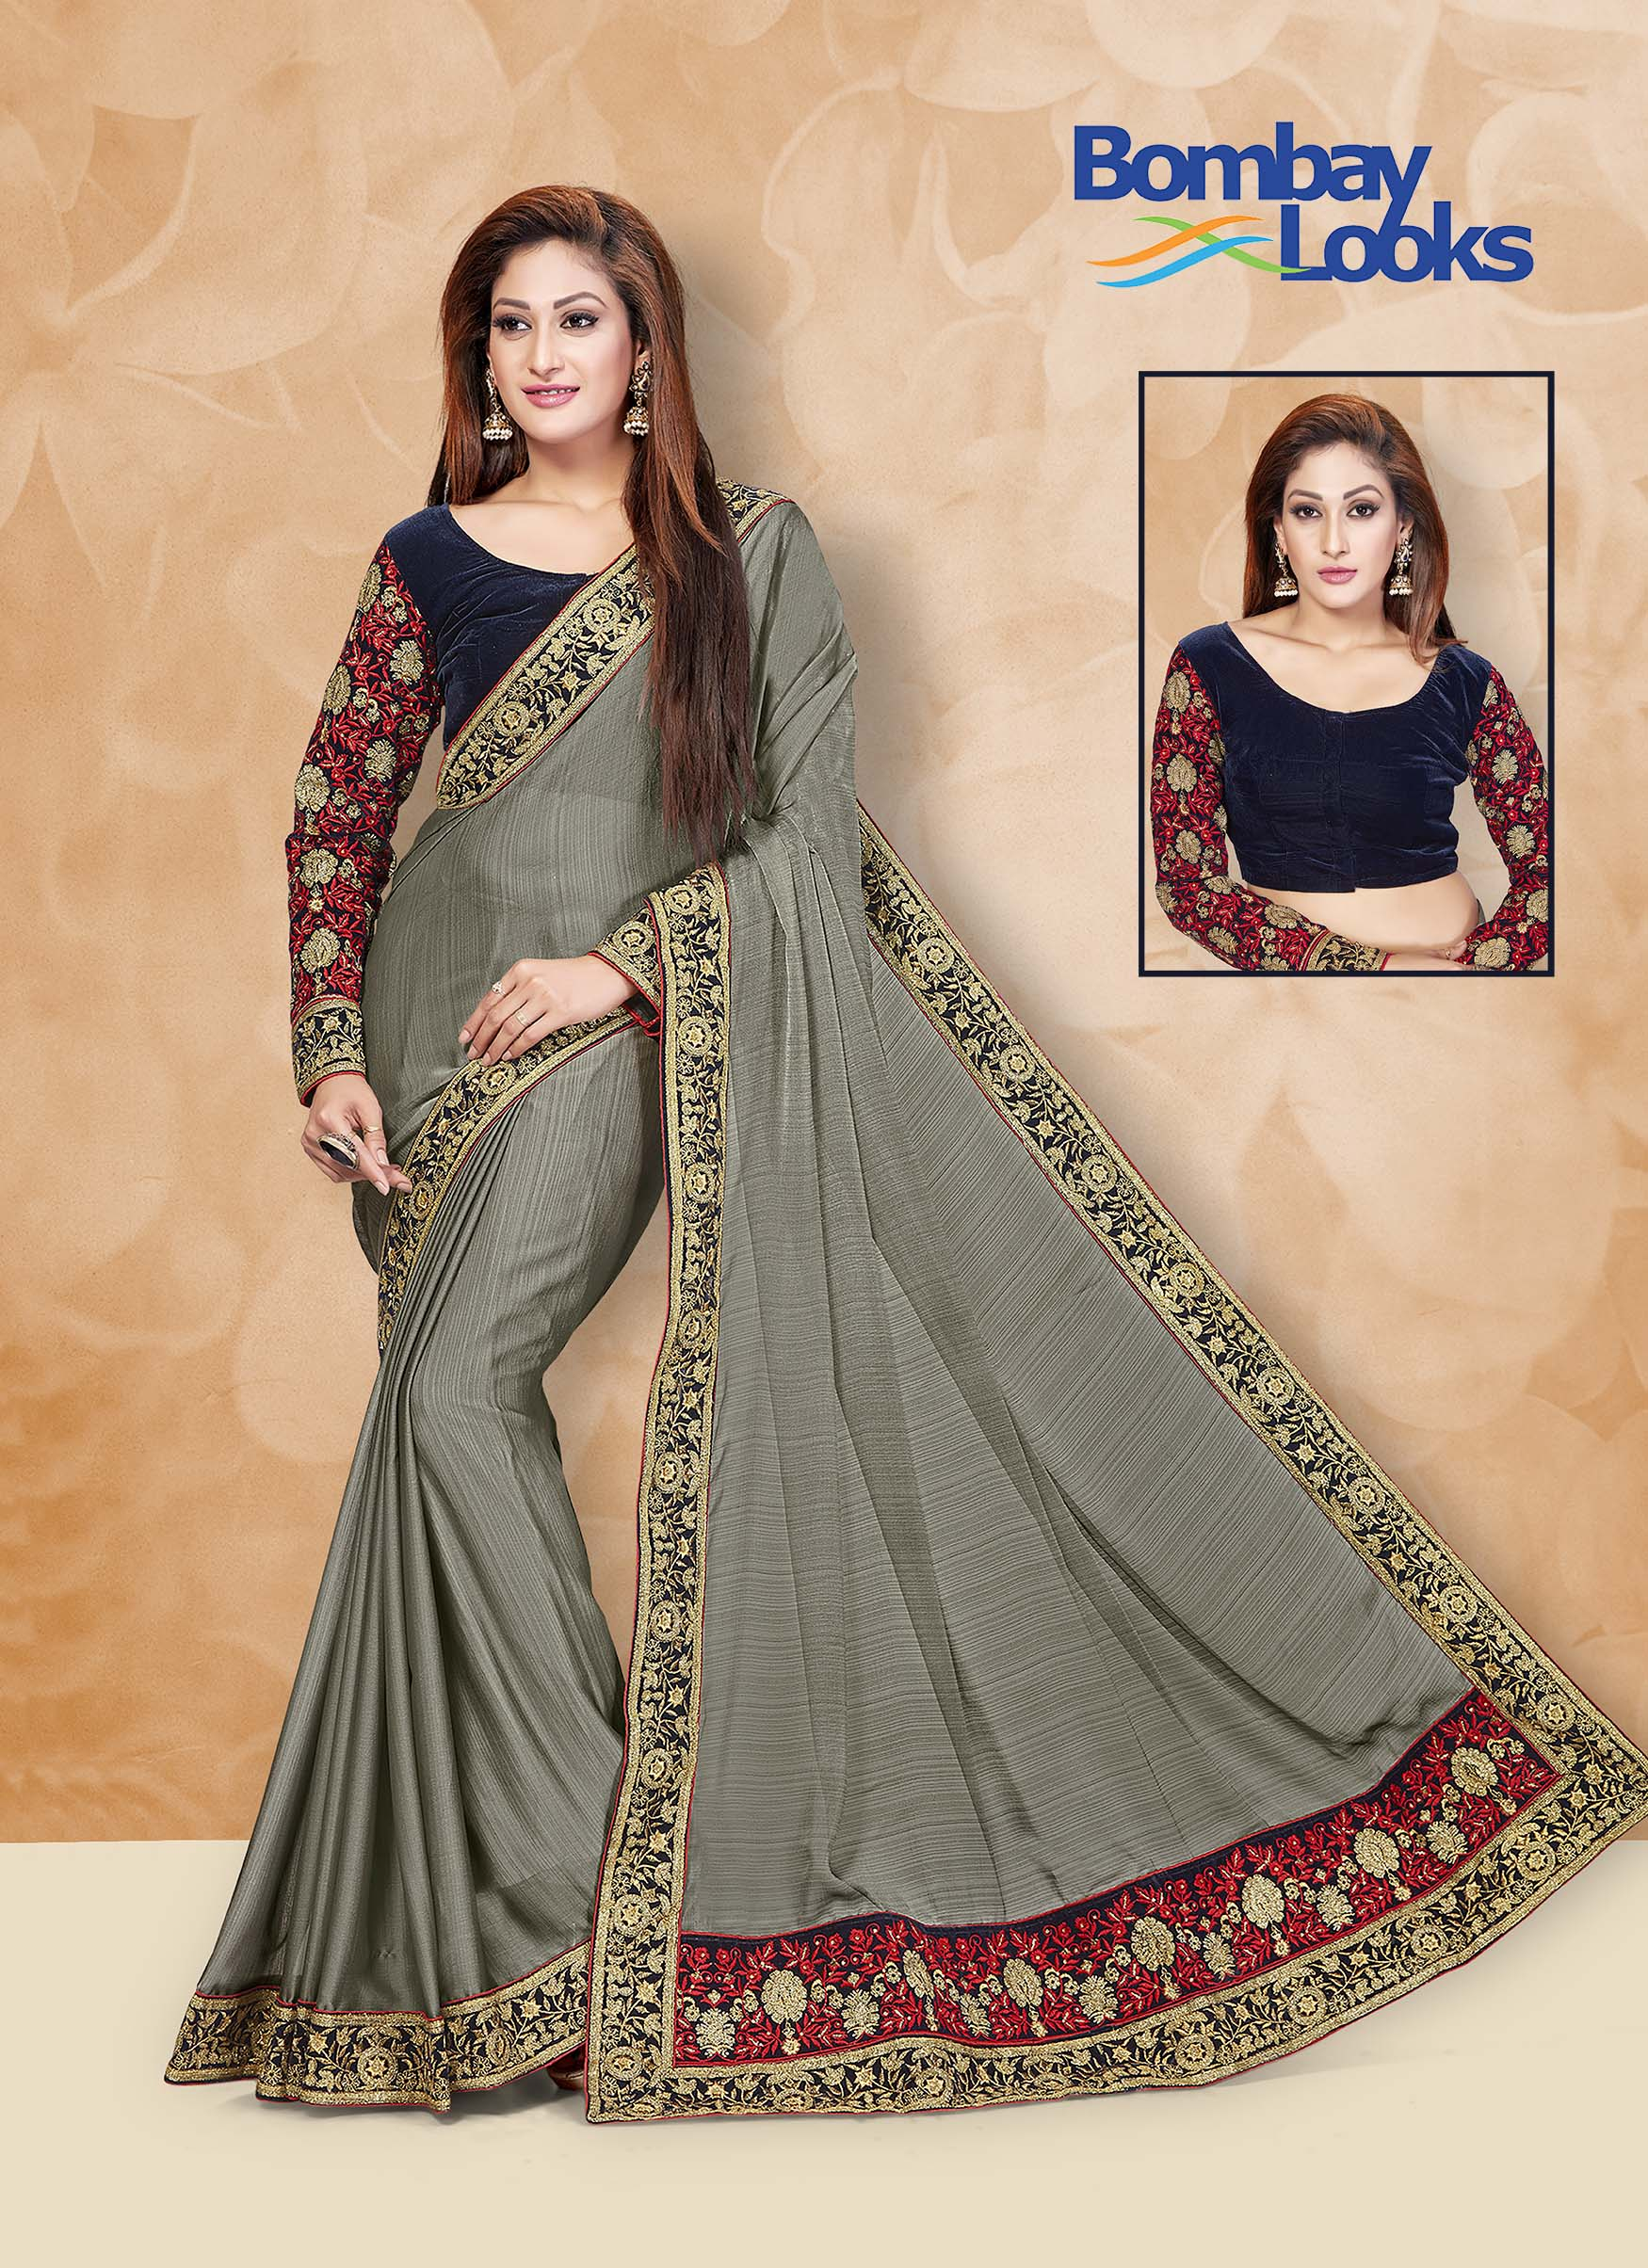 Metallic chiffon saree in grey with contrast velvet blouse